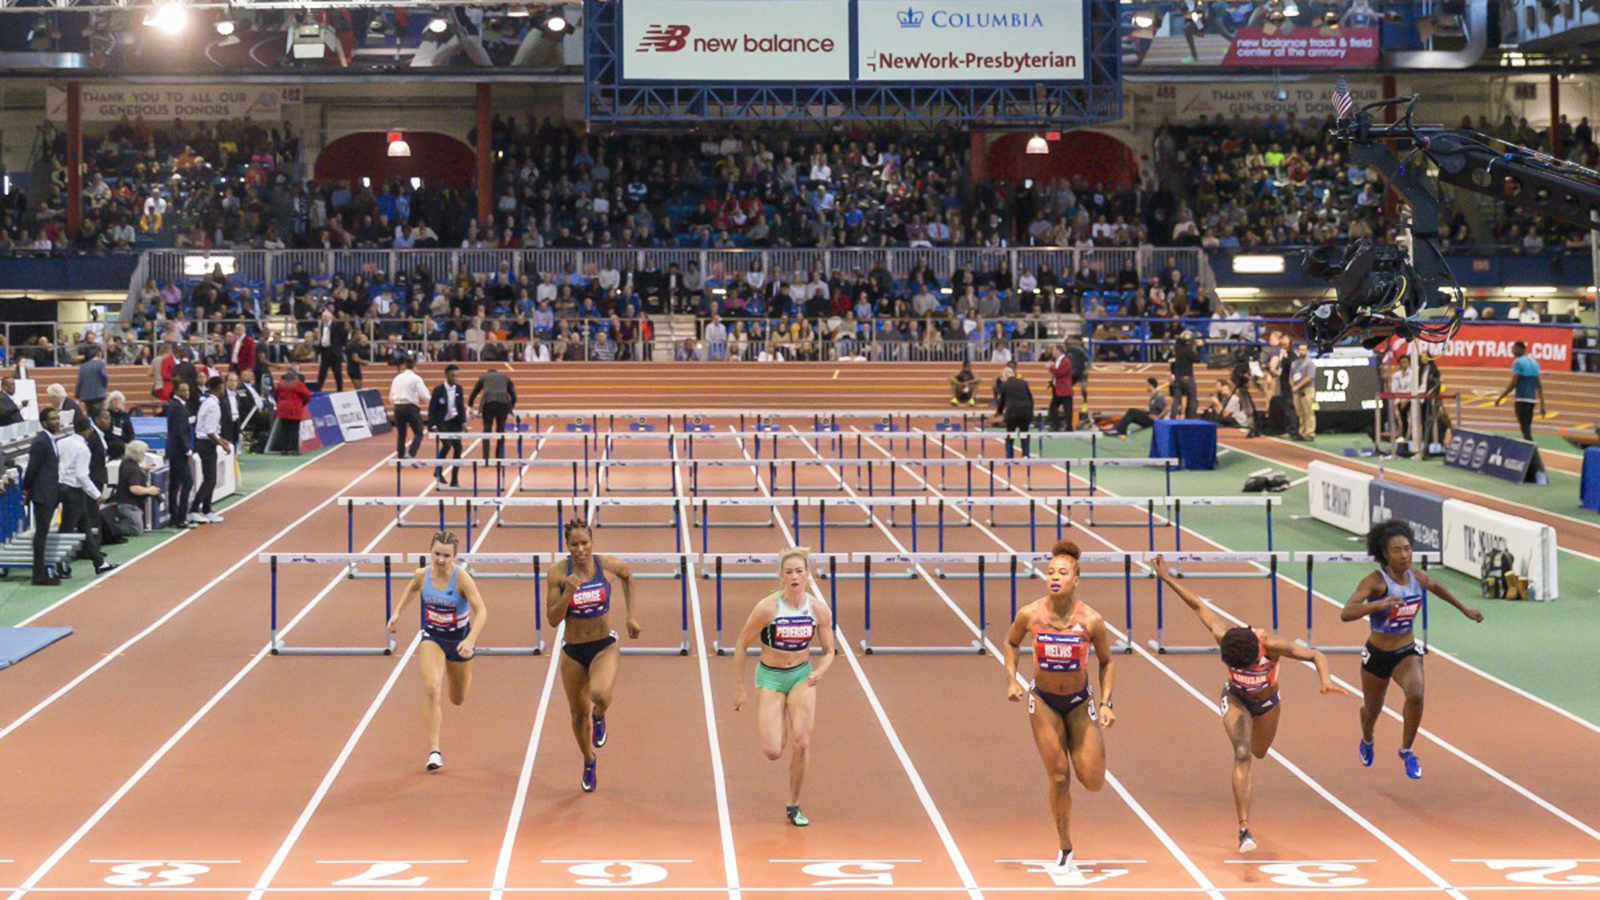 The end of a women's hurdle race in The Armory track